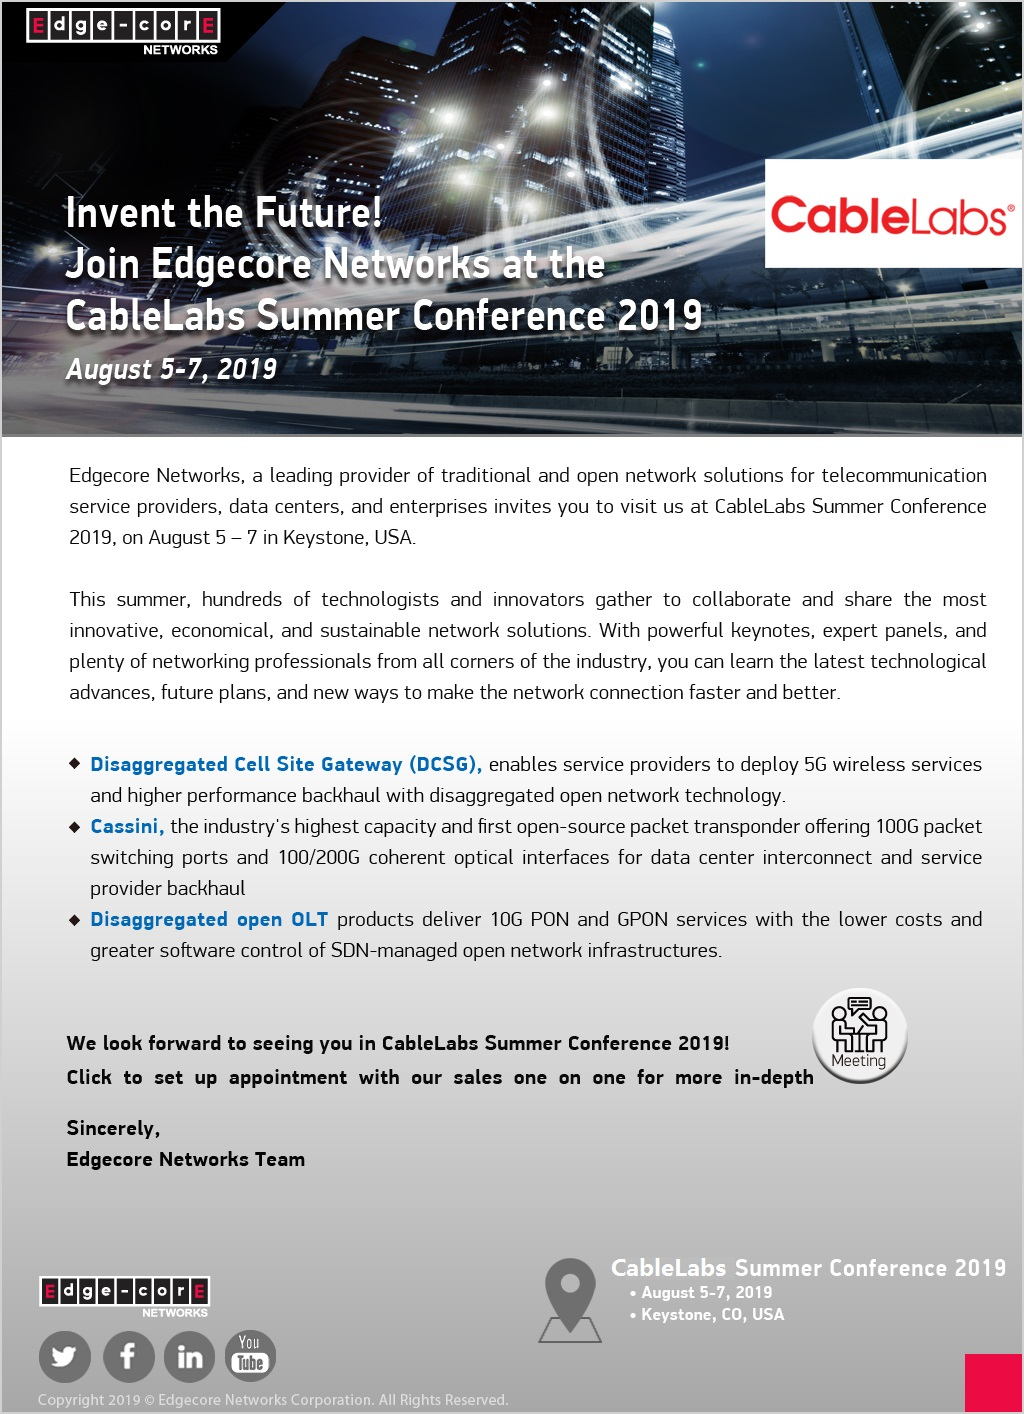 Cablelabs-Summer-Conference-2019_Invitation_1024.jpg